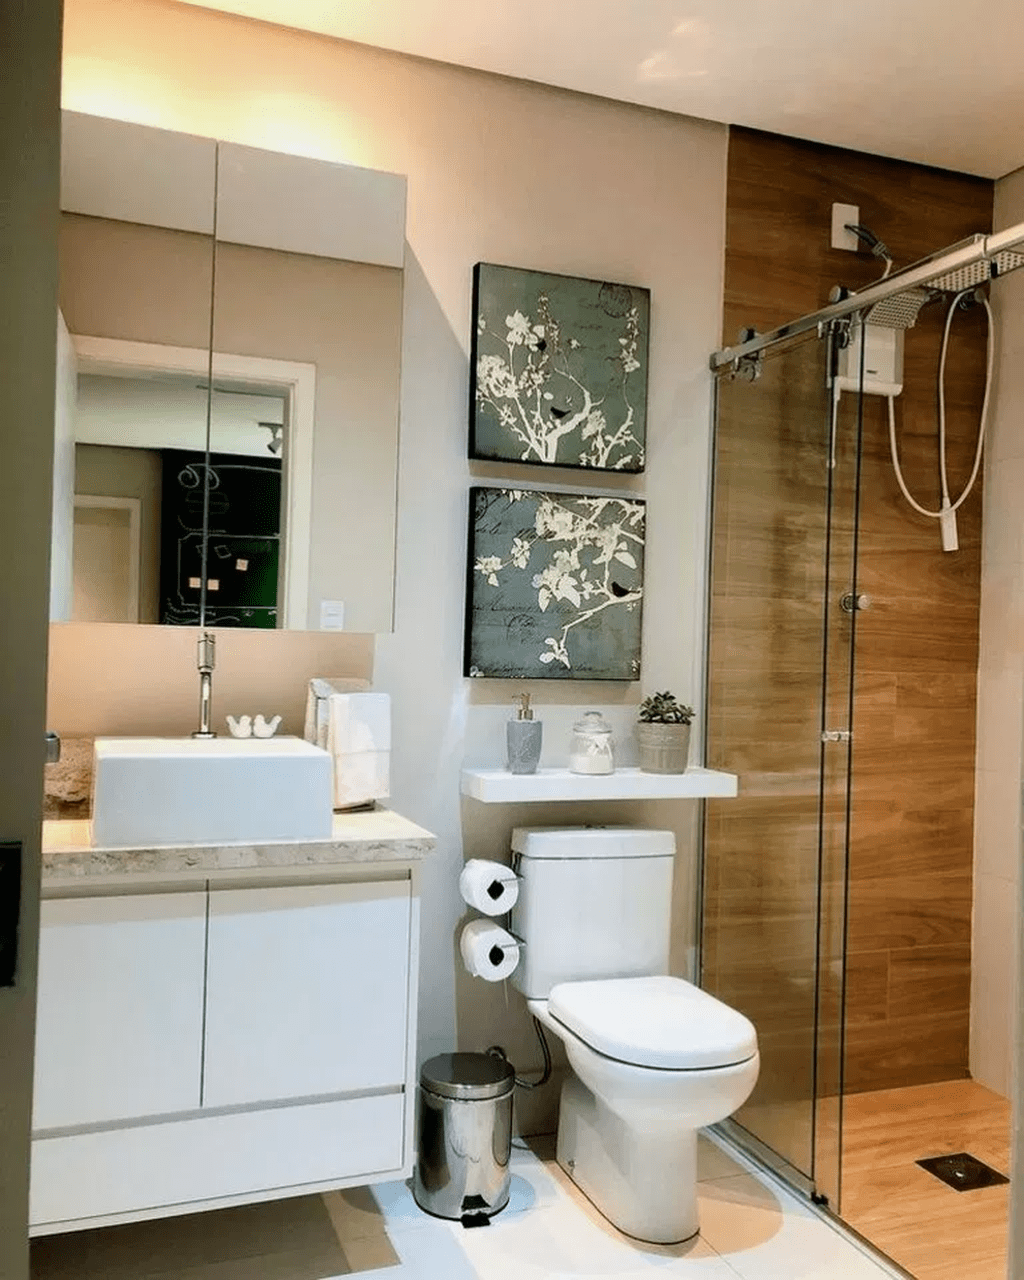 Awesome Small Bathroom Remodel Ideas On A Budget 12